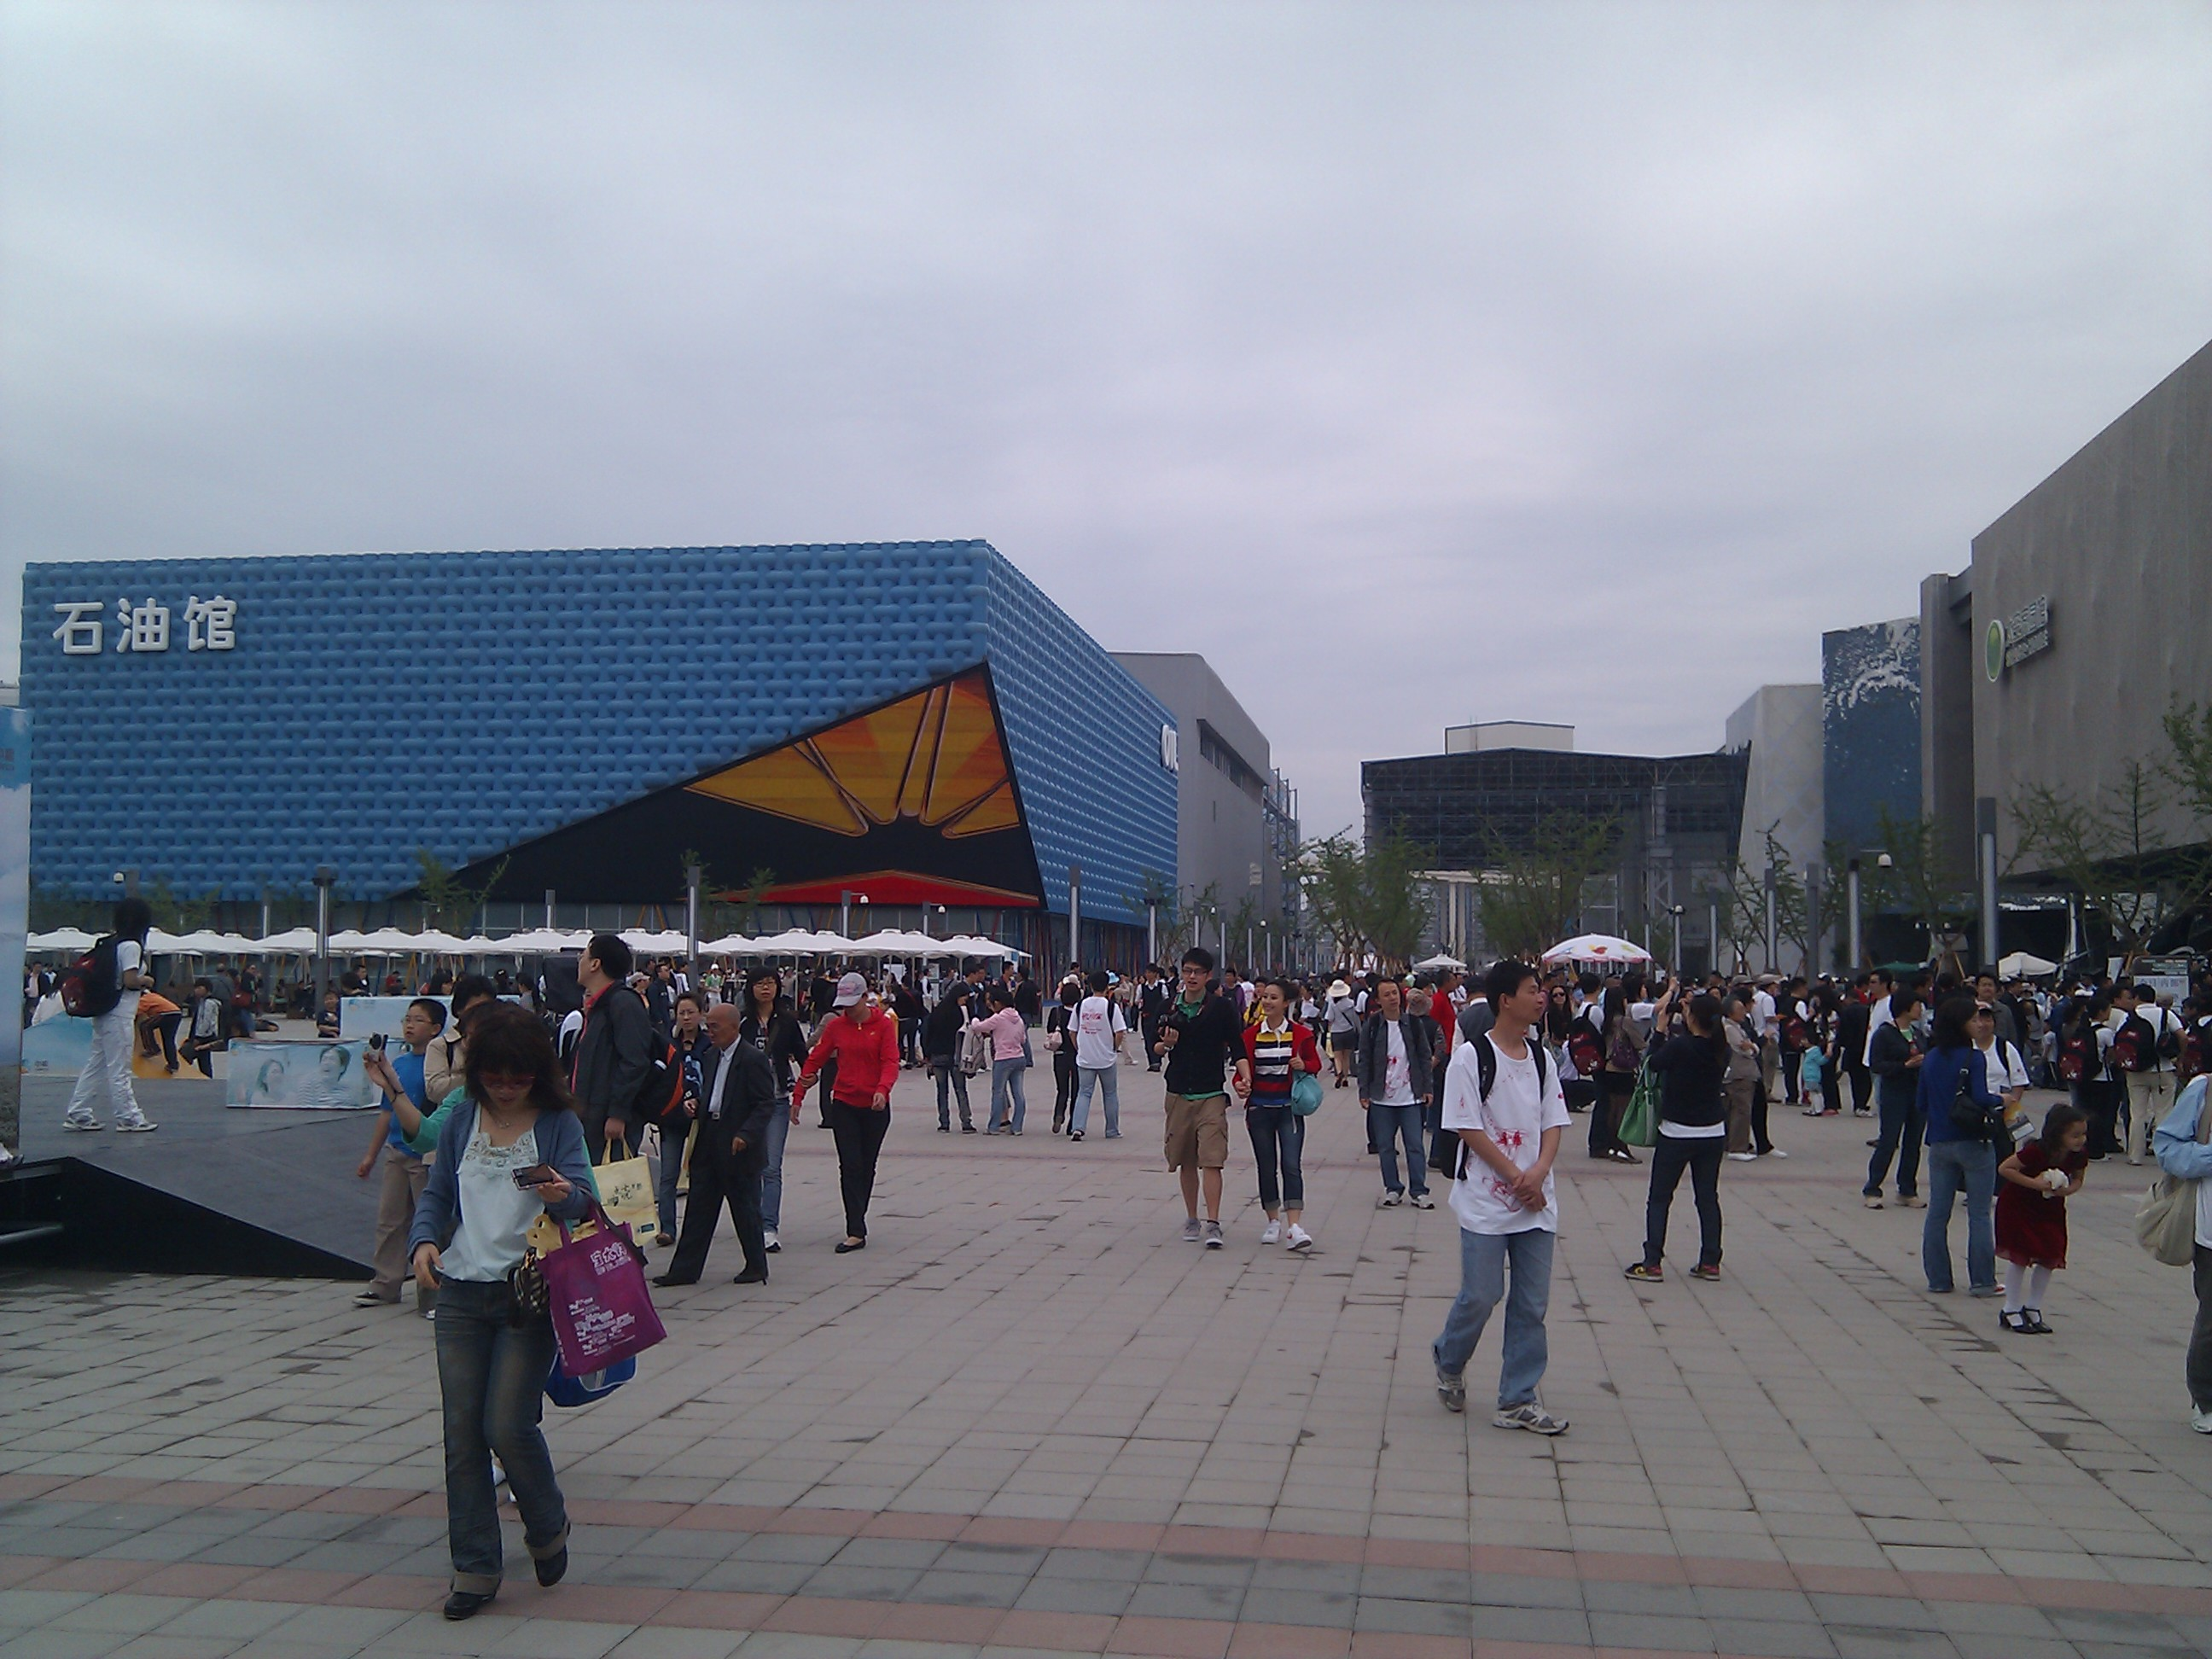 File:Oil Pavilion of Shanghai Expo 2010.jpg - Wikimedia Commons